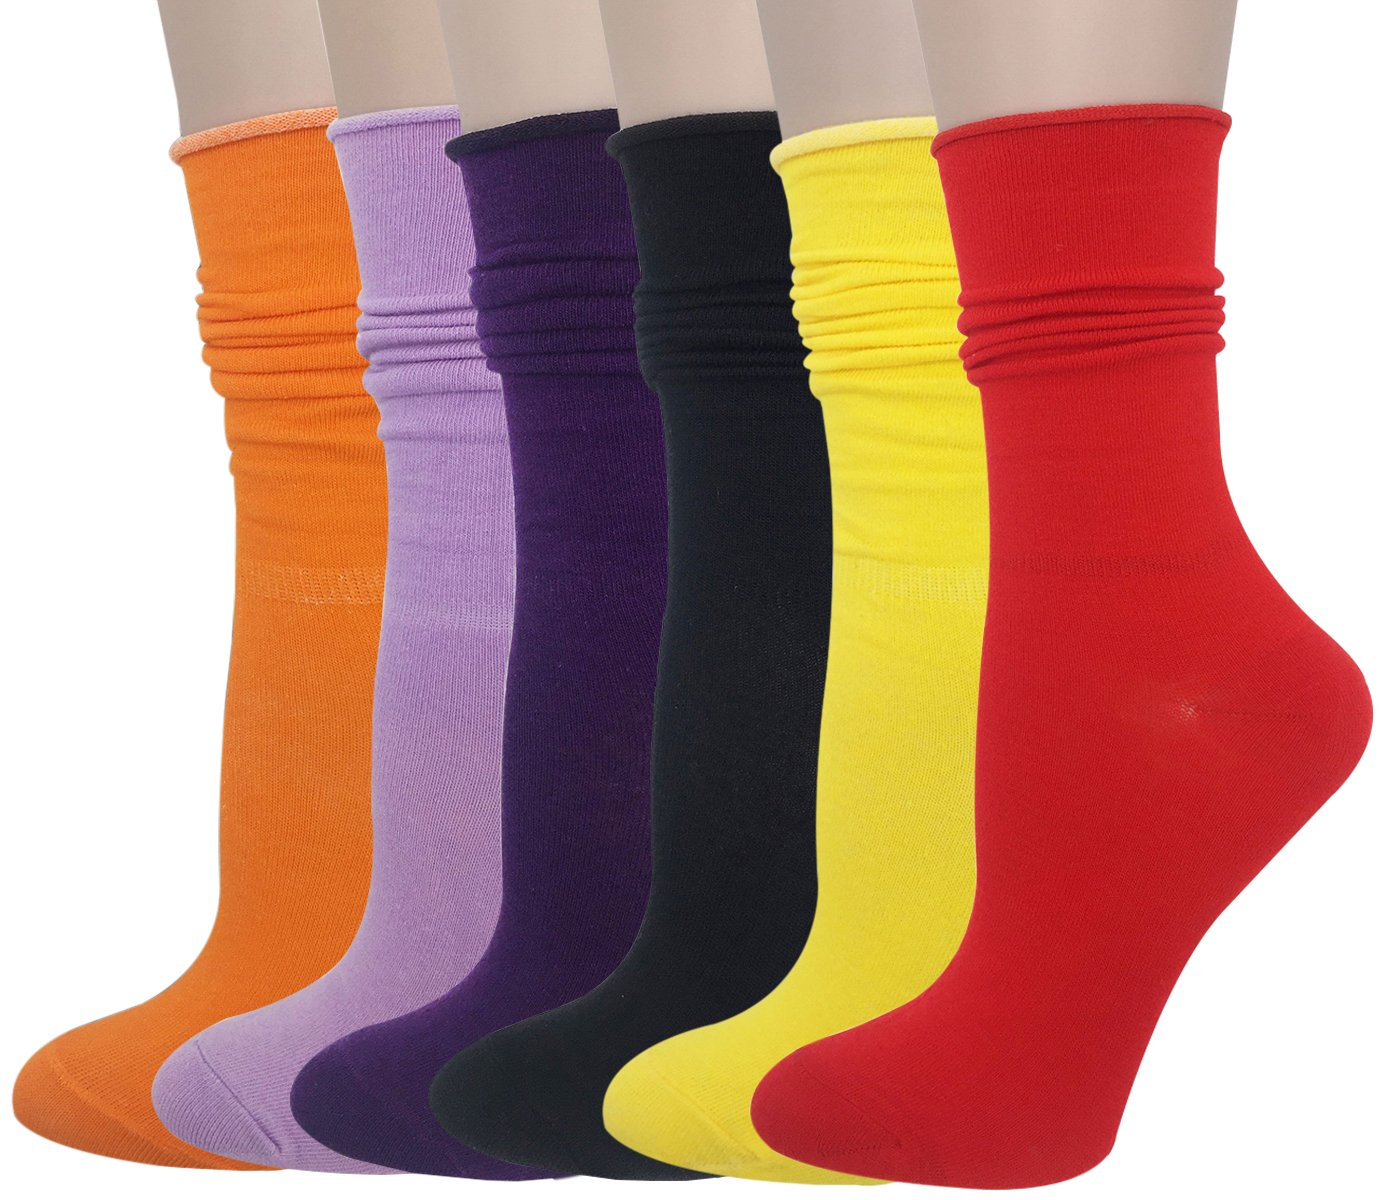 Cityelf Women's Classic Roll Top Cotton Compression Socks (6 pairs, mix) by Cityelf (Image #2)